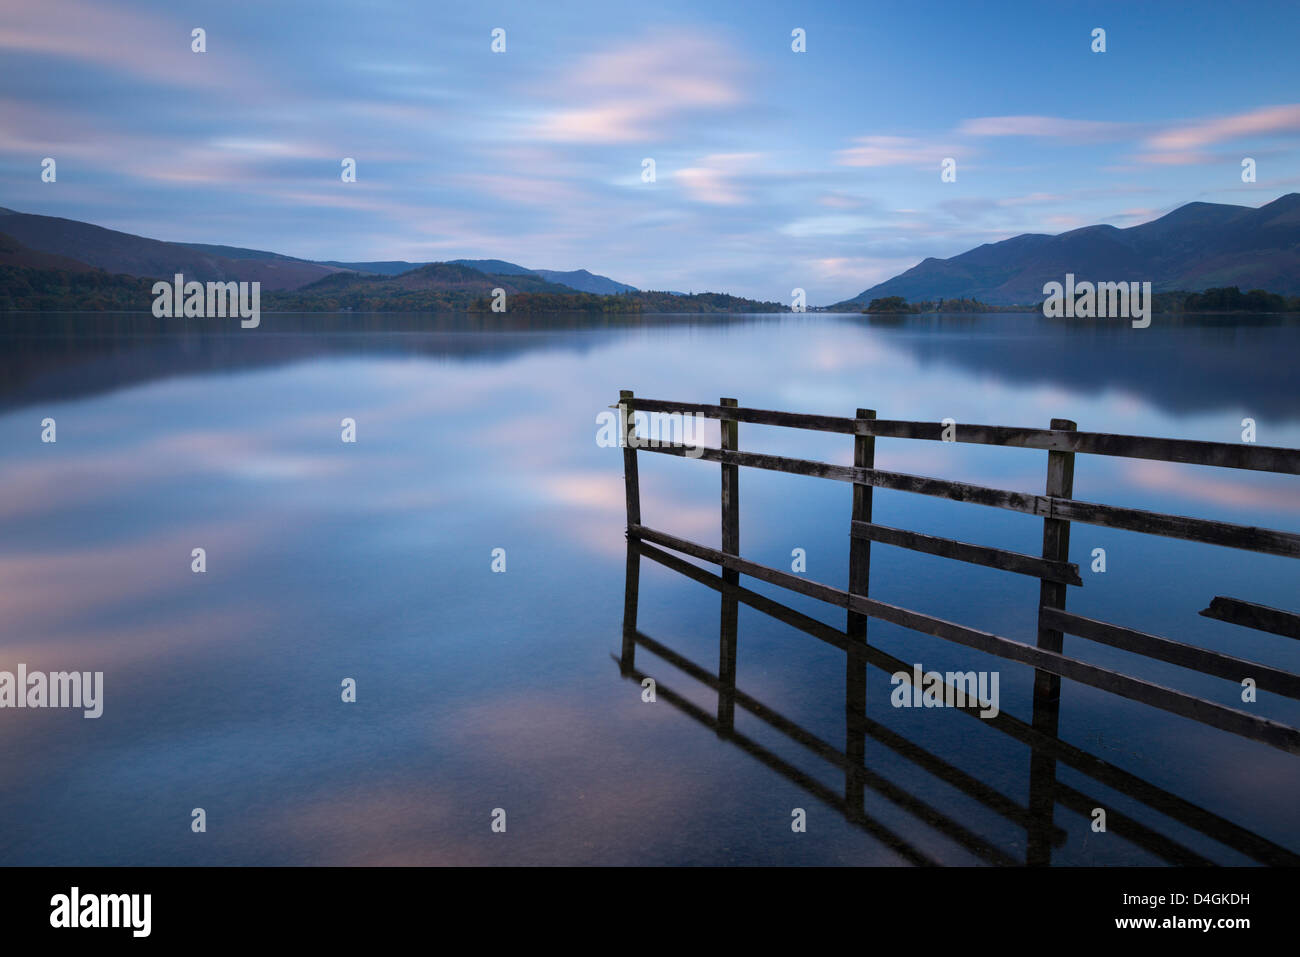 Tranquil Derwent Water at dusk, Lake District, Cumbria, England. Autumn (October) 2012. - Stock Image